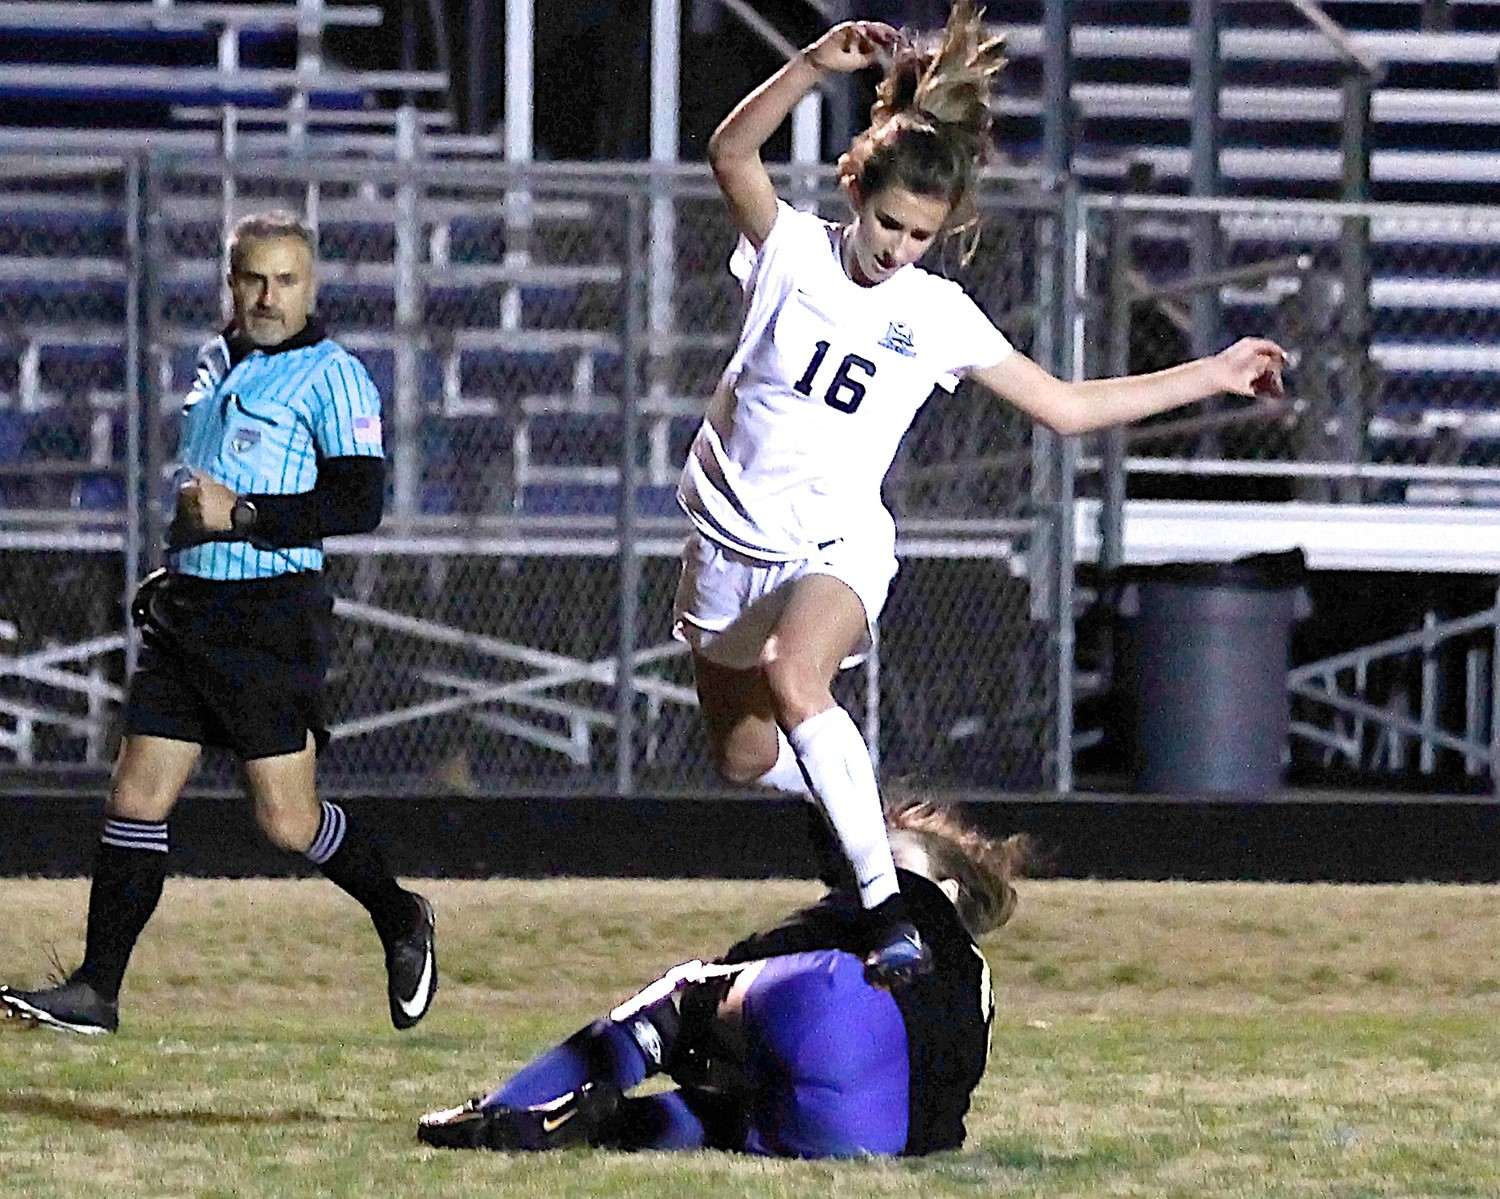 Julia Deal (16) of Ponte Vedra leaps over the Falcons' goalkeeper.